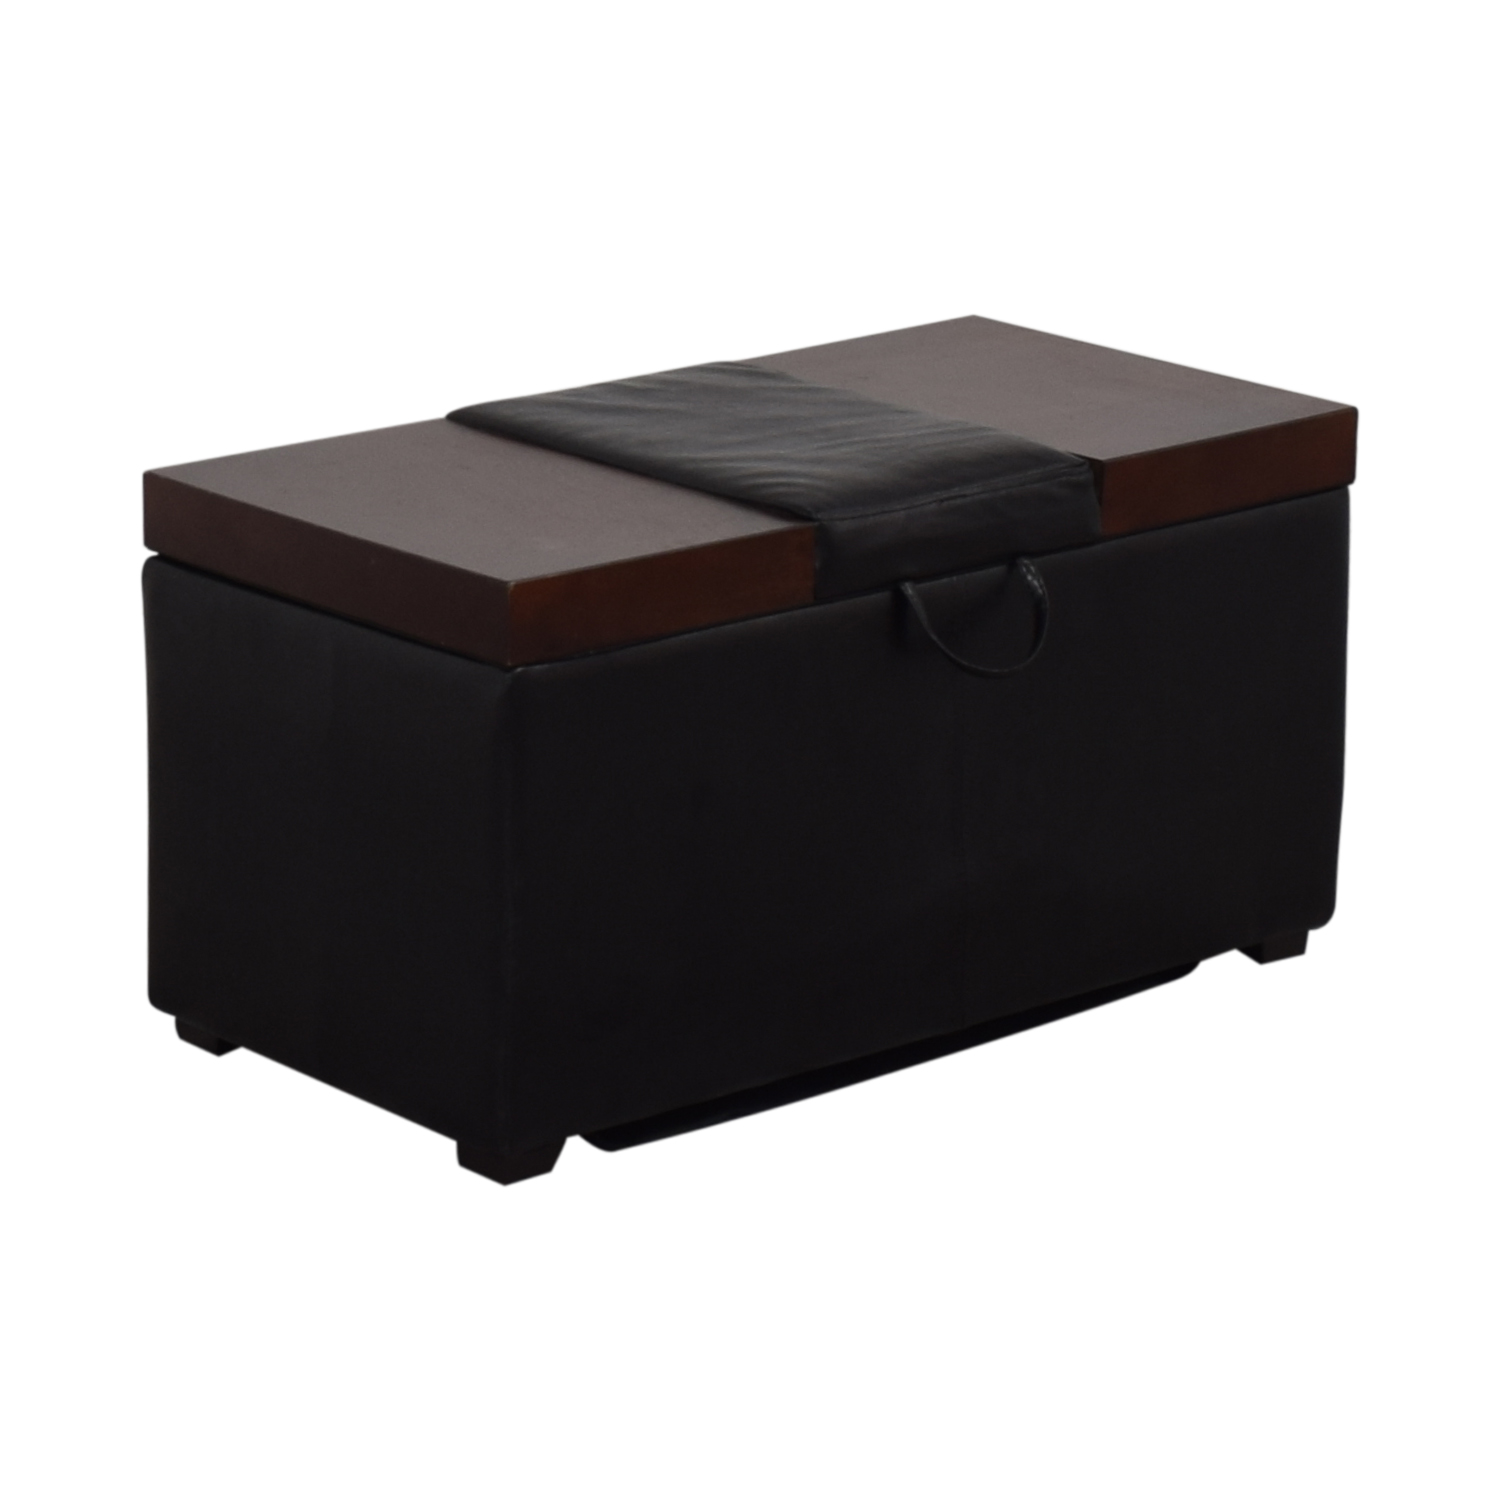 Belham Living Belham Living Madison Lift Top Upholstered Storage Ottoman price